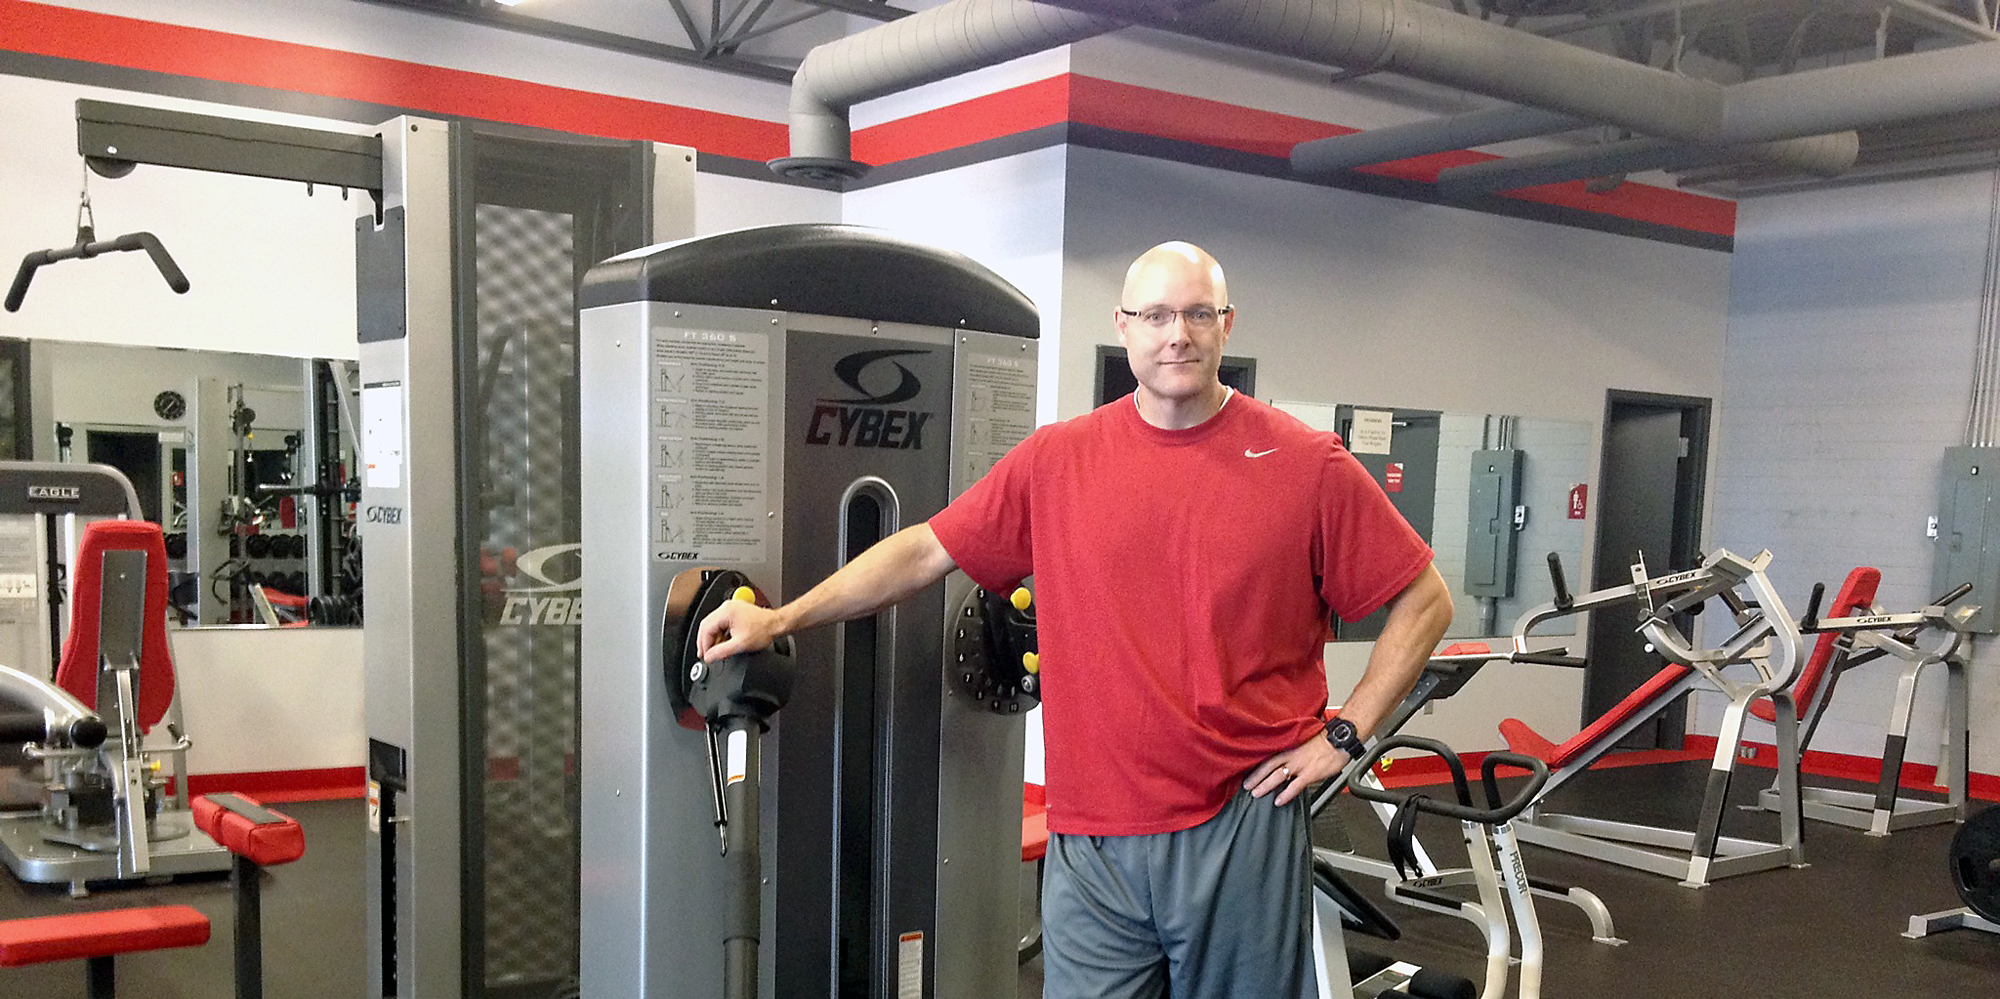 Westfield resident and personal trainer Doug Biggs opened Snap Fitness to offer 24/7 access to members to workout whenever their schedules allow. (Photo by Brianna Susnak)